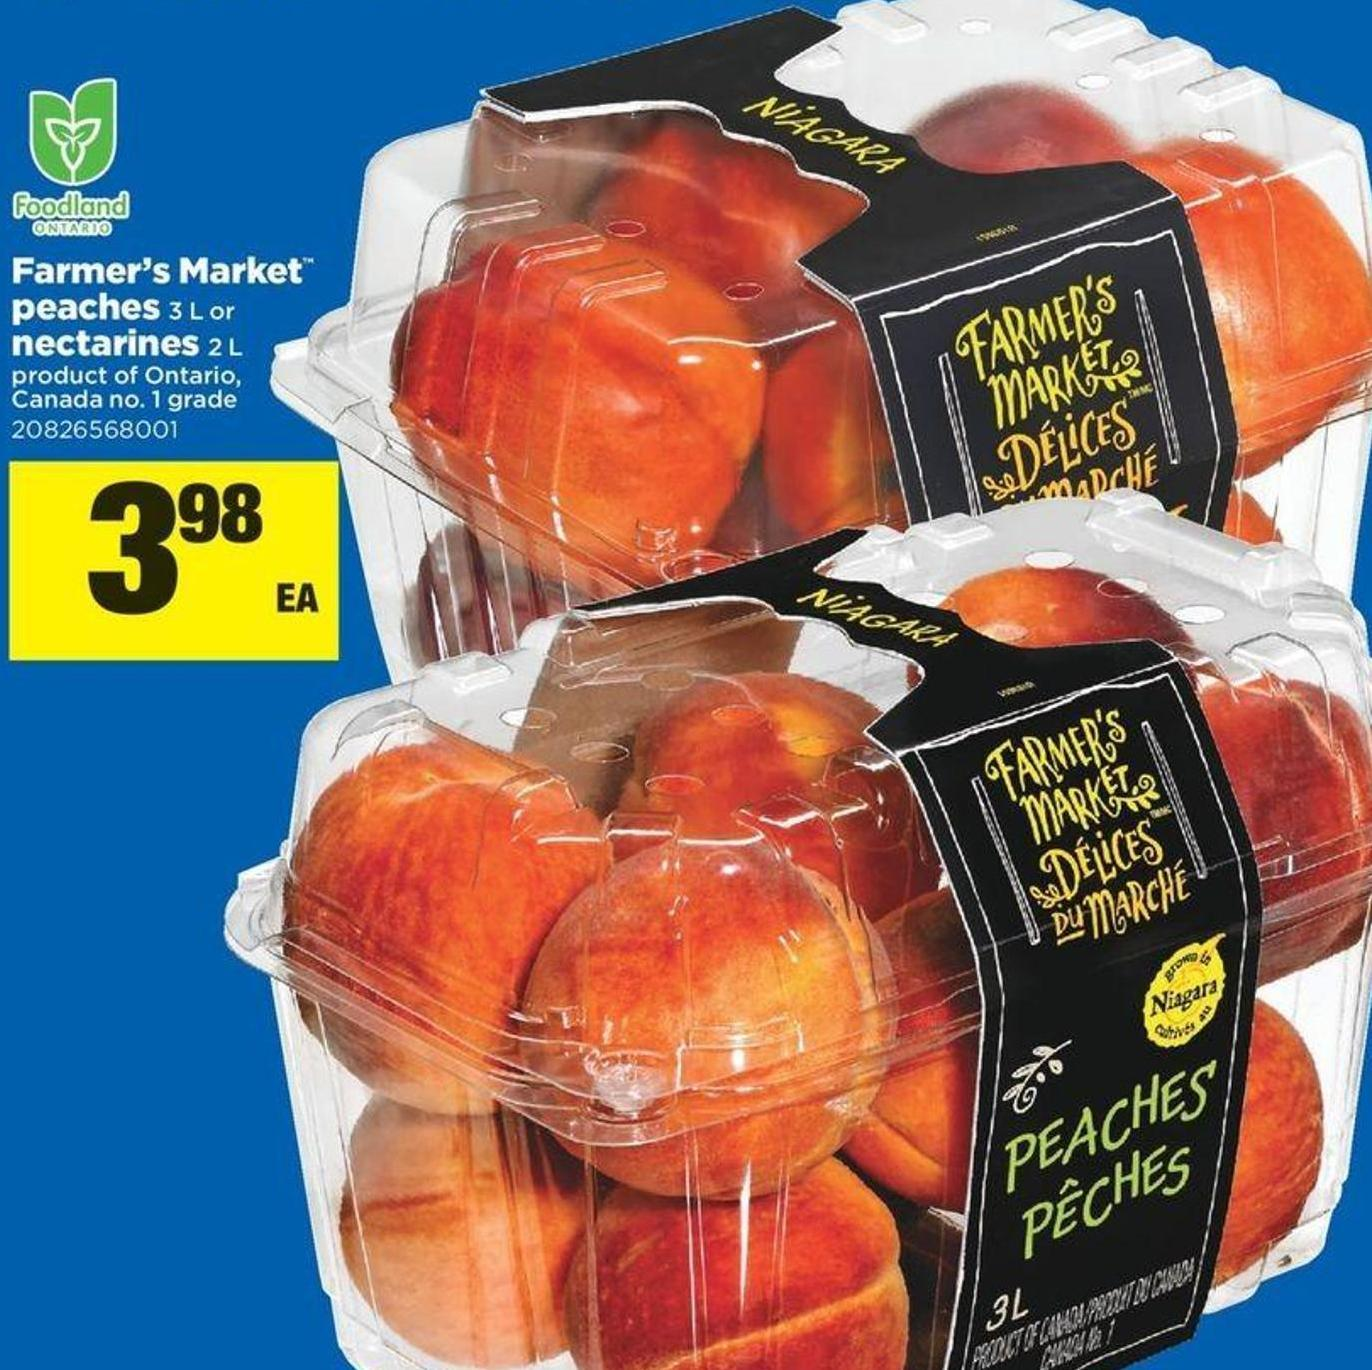 Farmer's Market Peaches - 3 L Or Nectarines - 2 L